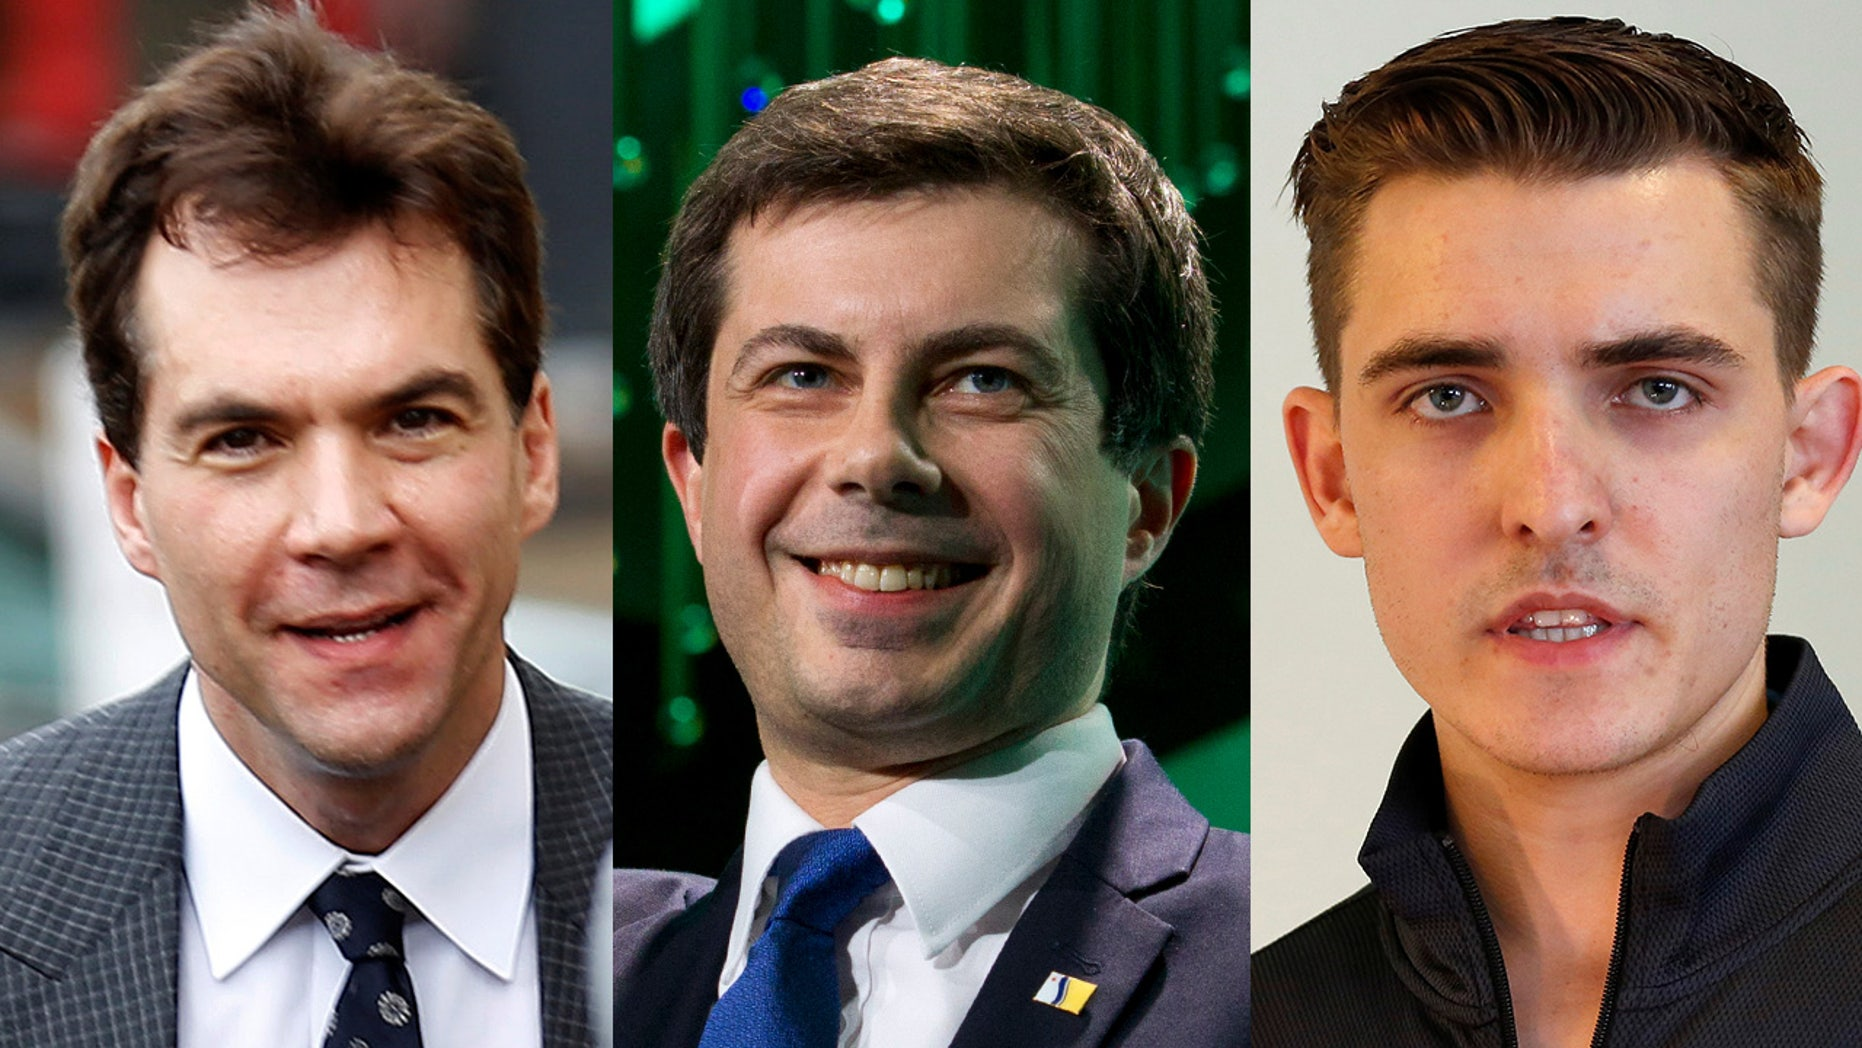 Jack Burkman, left, and Jacob Wohl, right, are accused of orchestrating sexual assault allegations against Pete Buttigieg, center. (Reuters/AP)